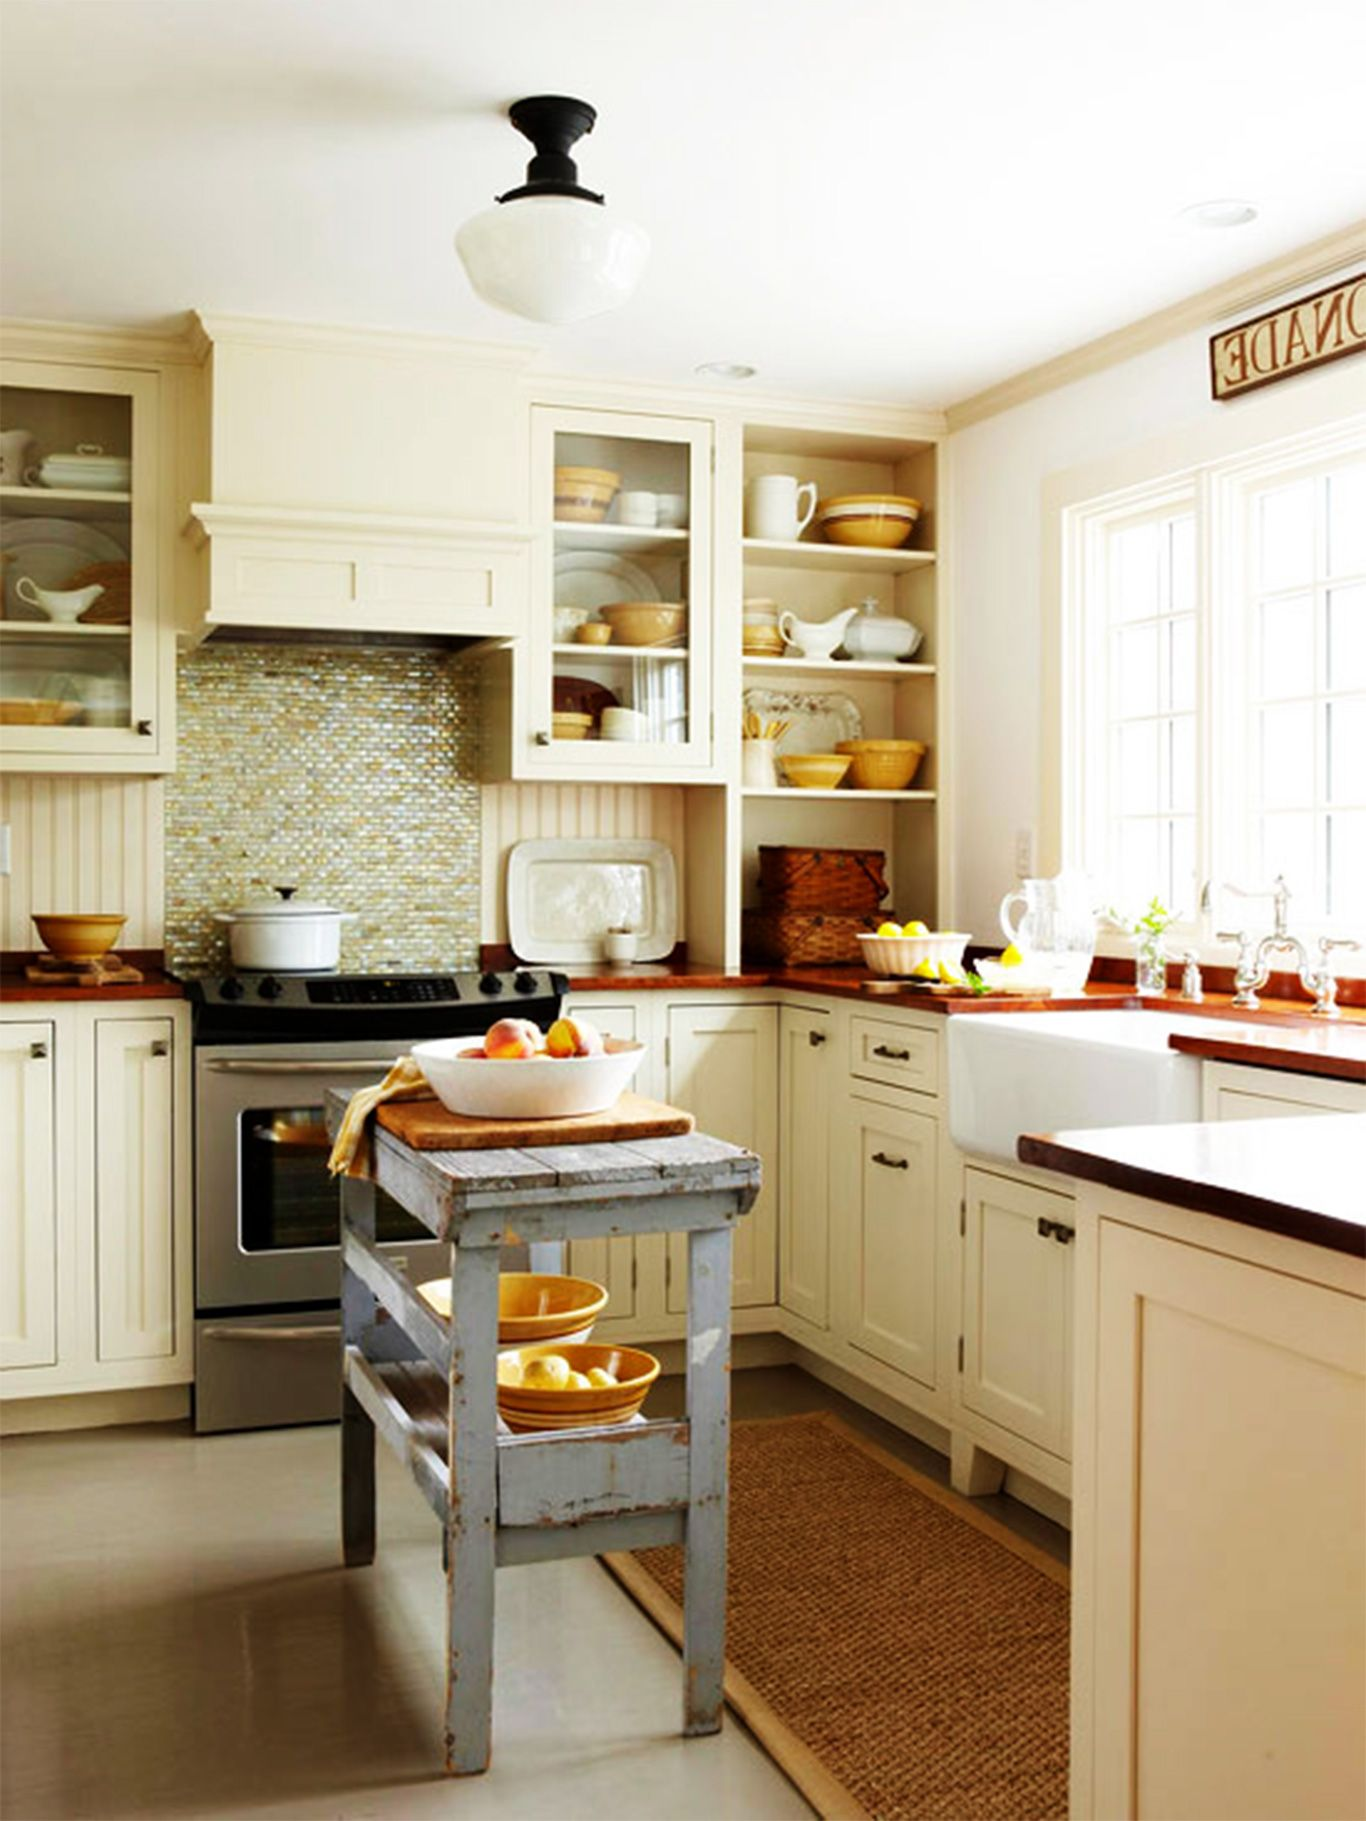 25 Best Small Kitchen Ideas and Designs for 2017 | Small ...